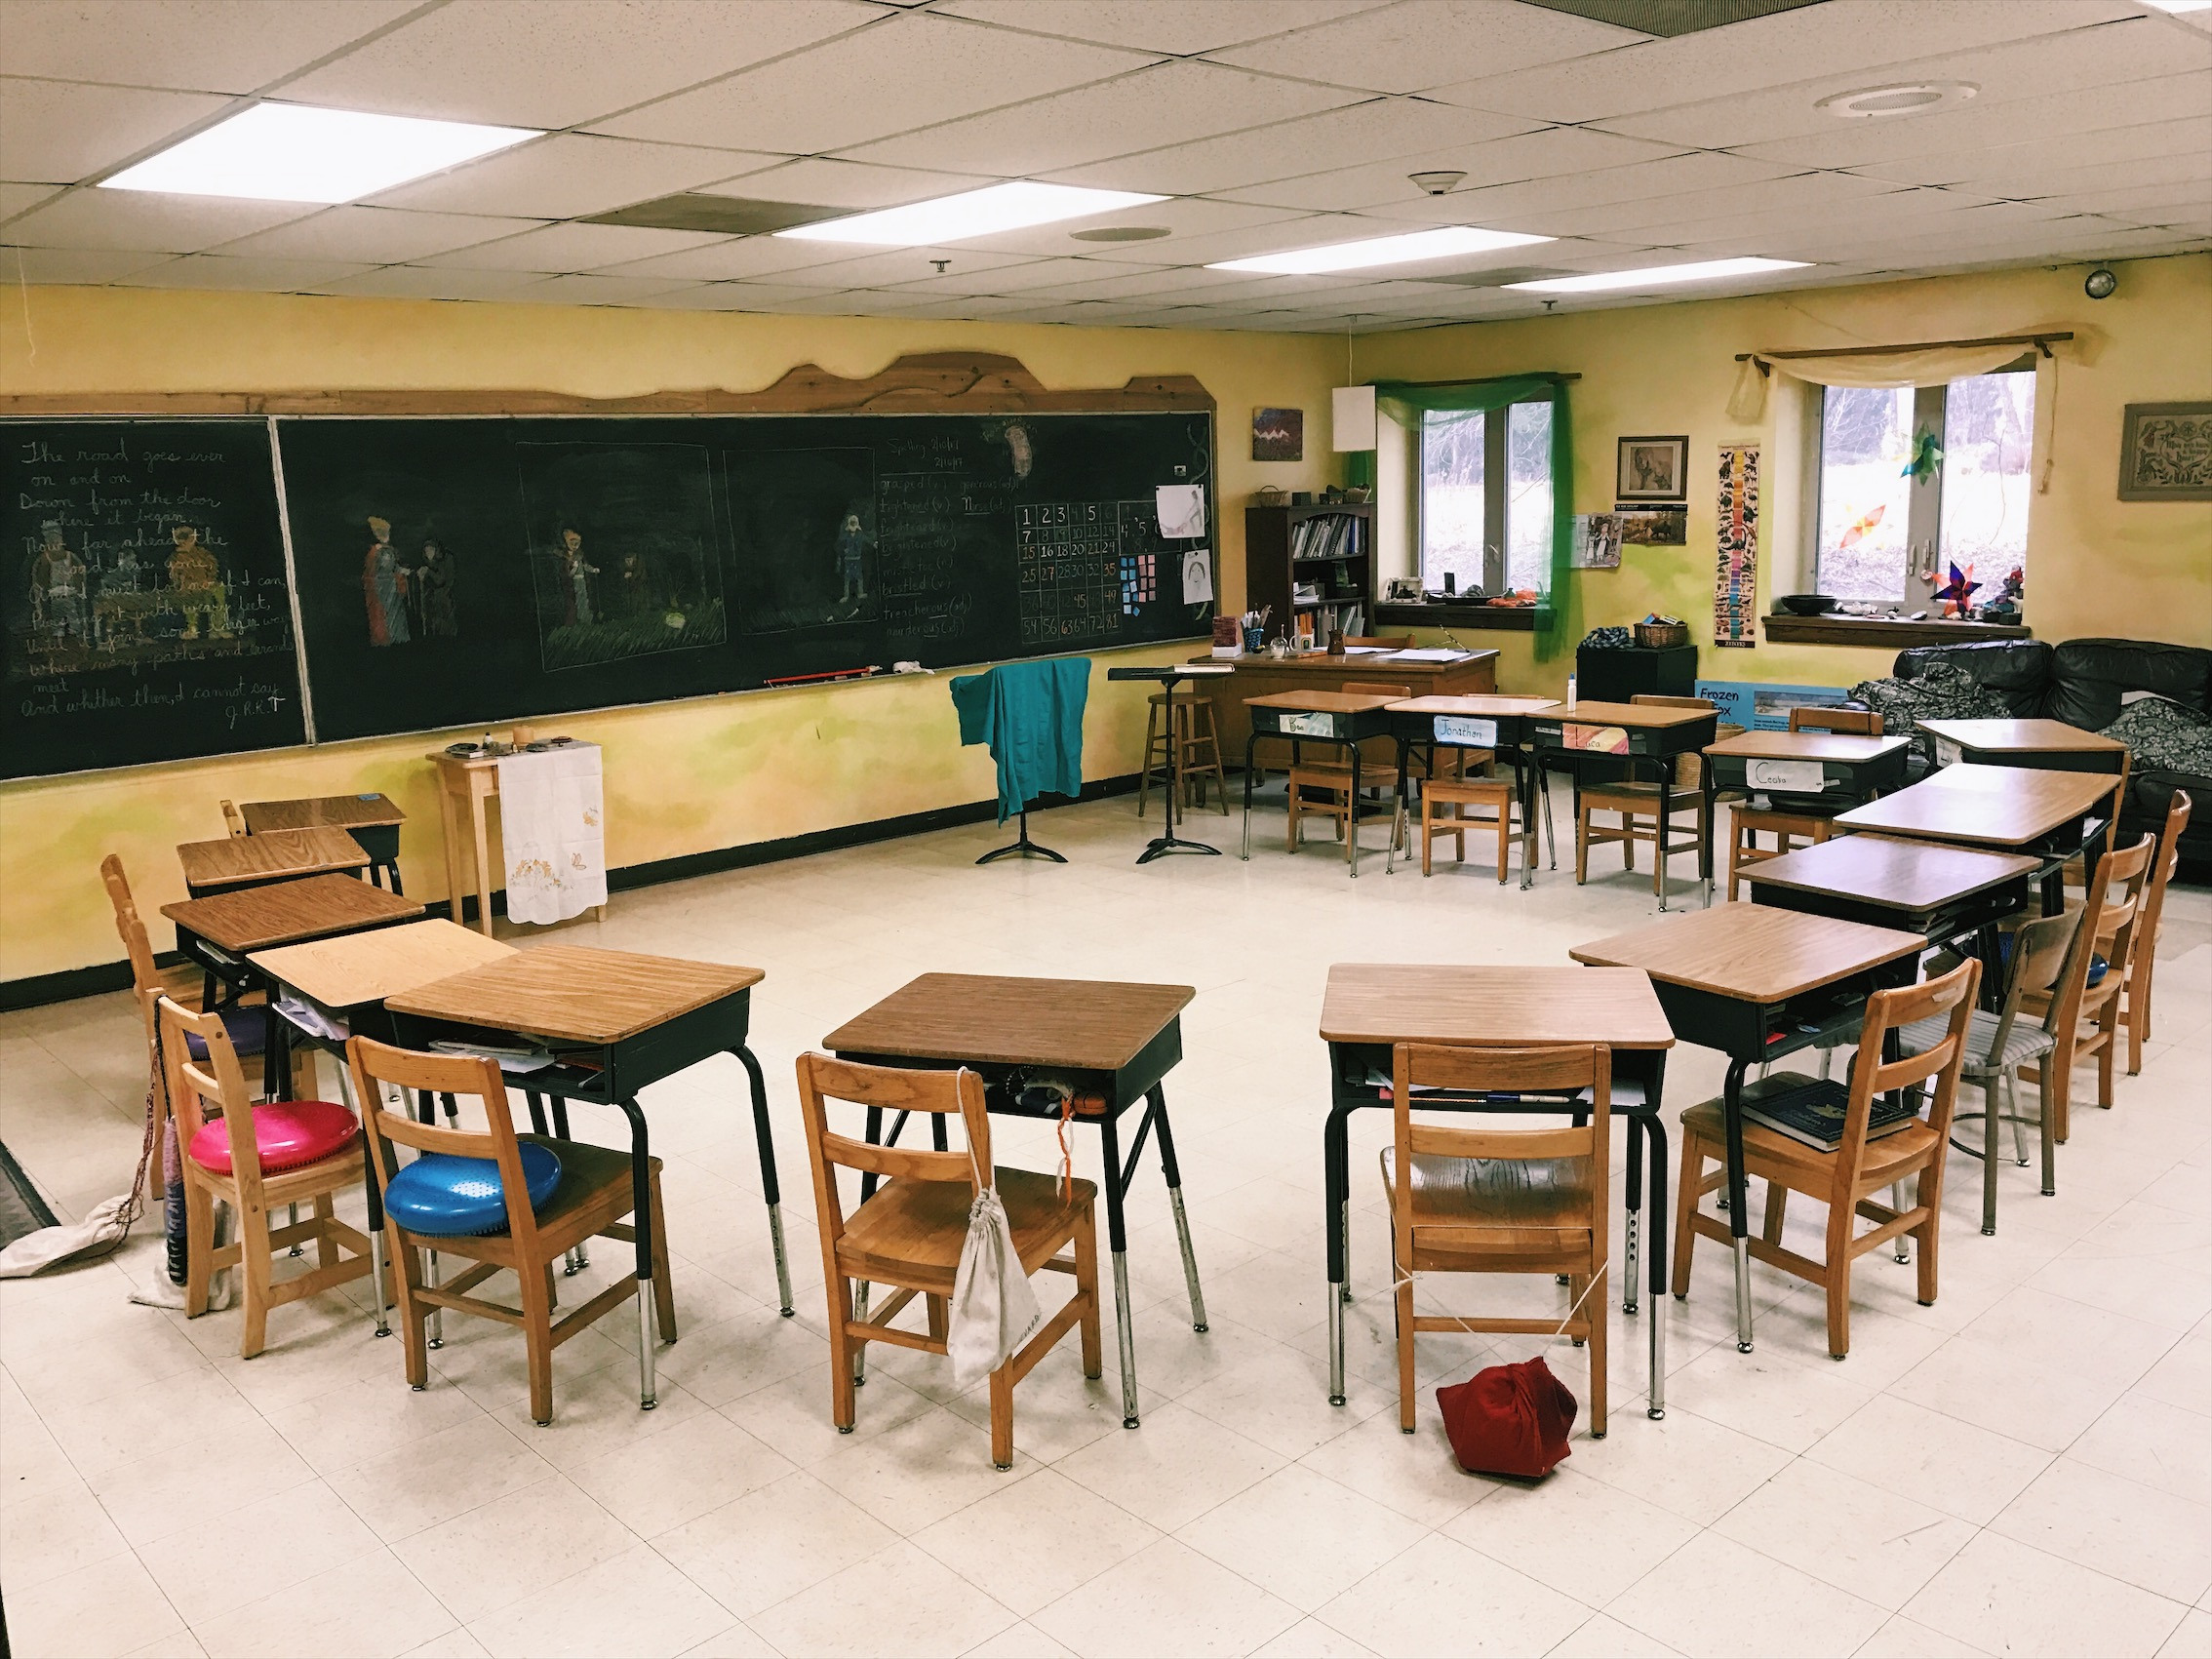 Rather than lining up the desks in rows, the fourth graders at Four Winds Waldorf School enjoy their class set up in a semicircle!